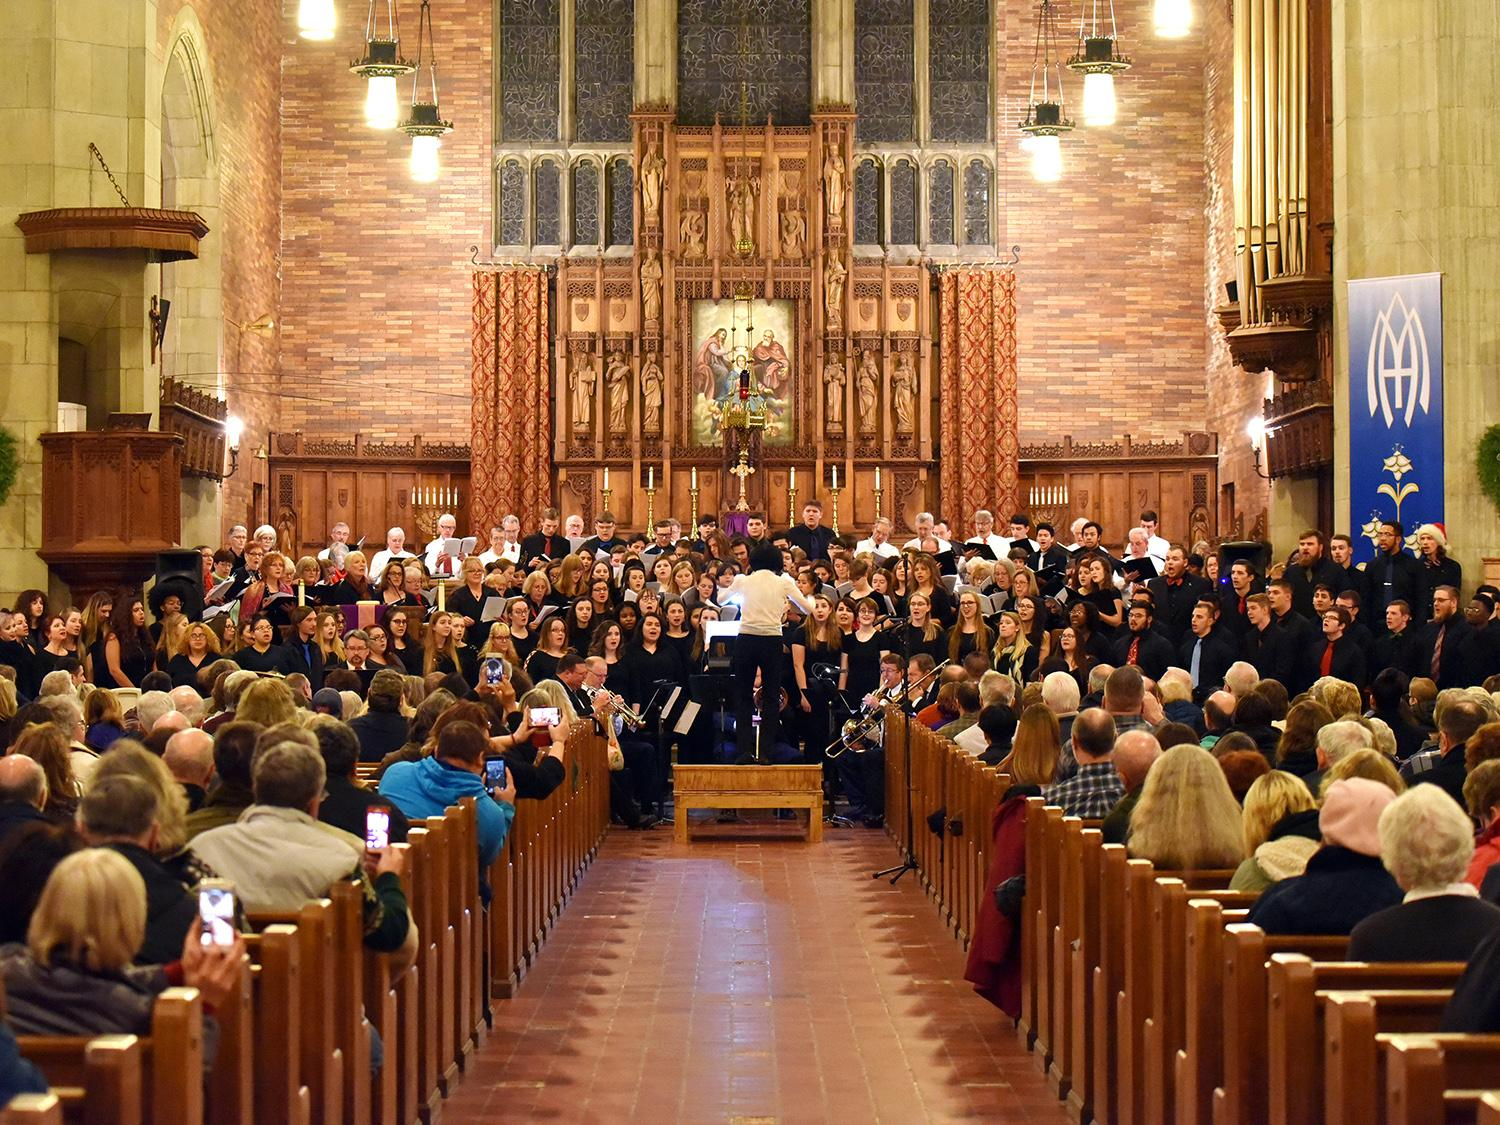 Oswego Festival Chorus performs in St. Mary's Church